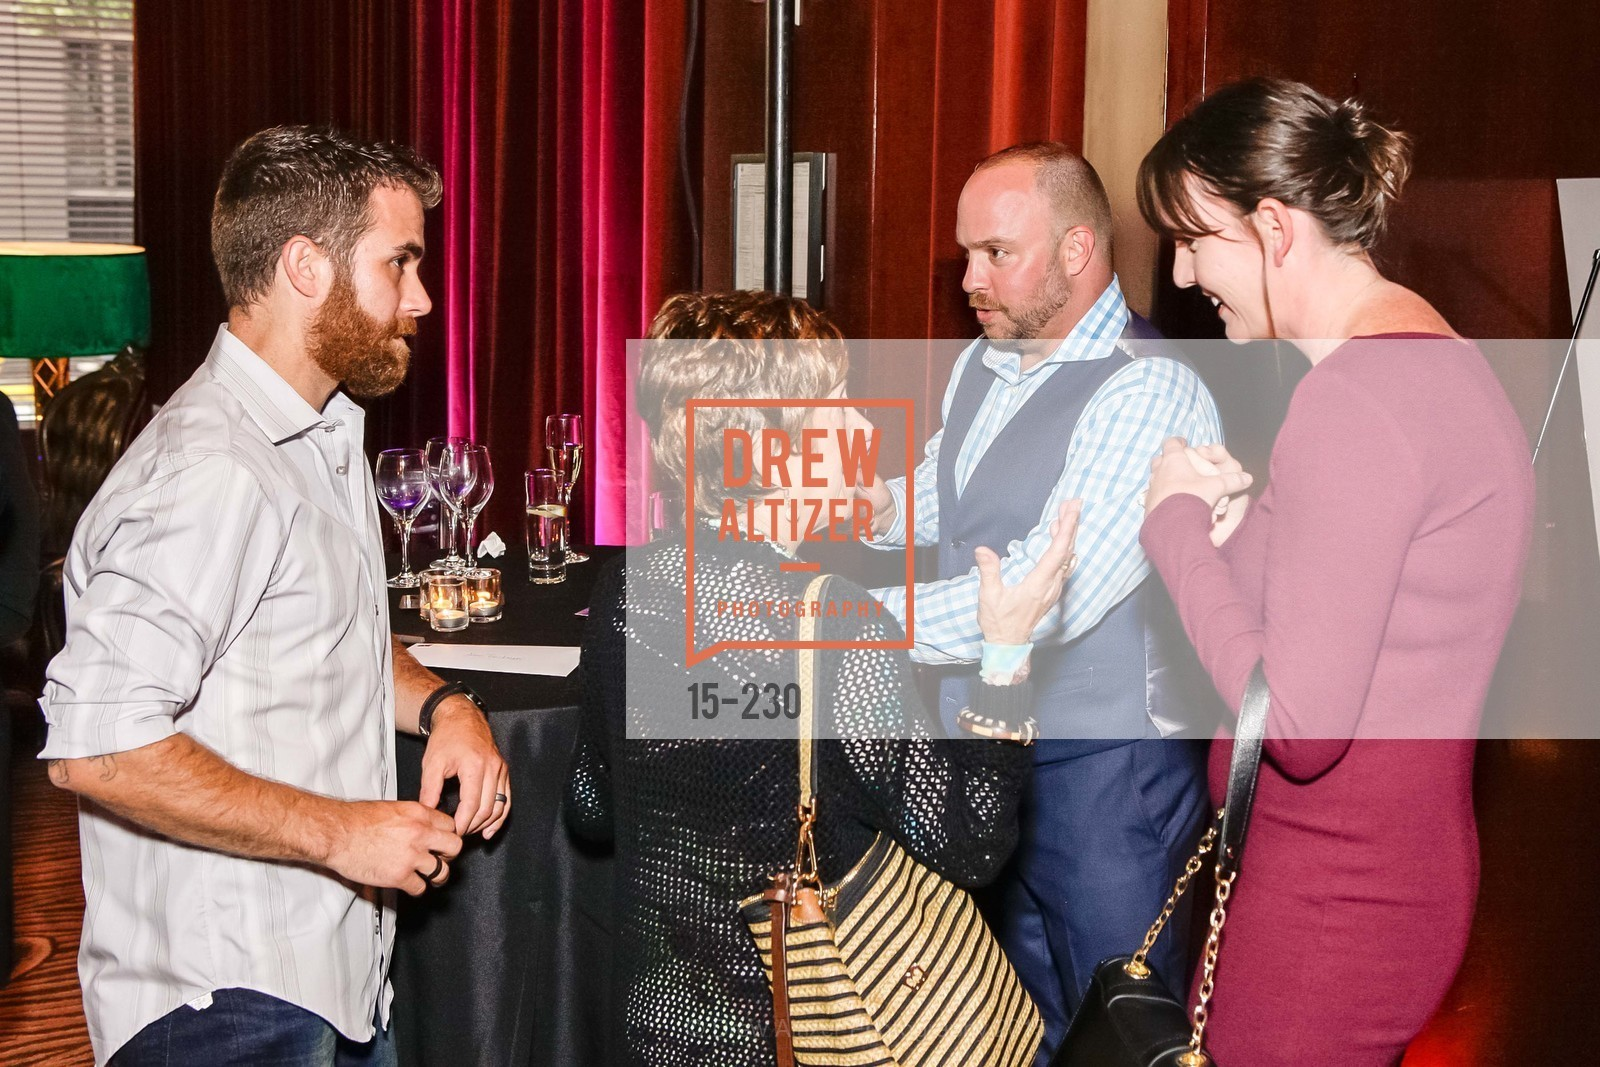 Extras, This Old Bag San Francisco Preview Party, August 13th, 2015, Photo,Drew Altizer, Drew Altizer Photography, full-service agency, private events, San Francisco photographer, photographer california